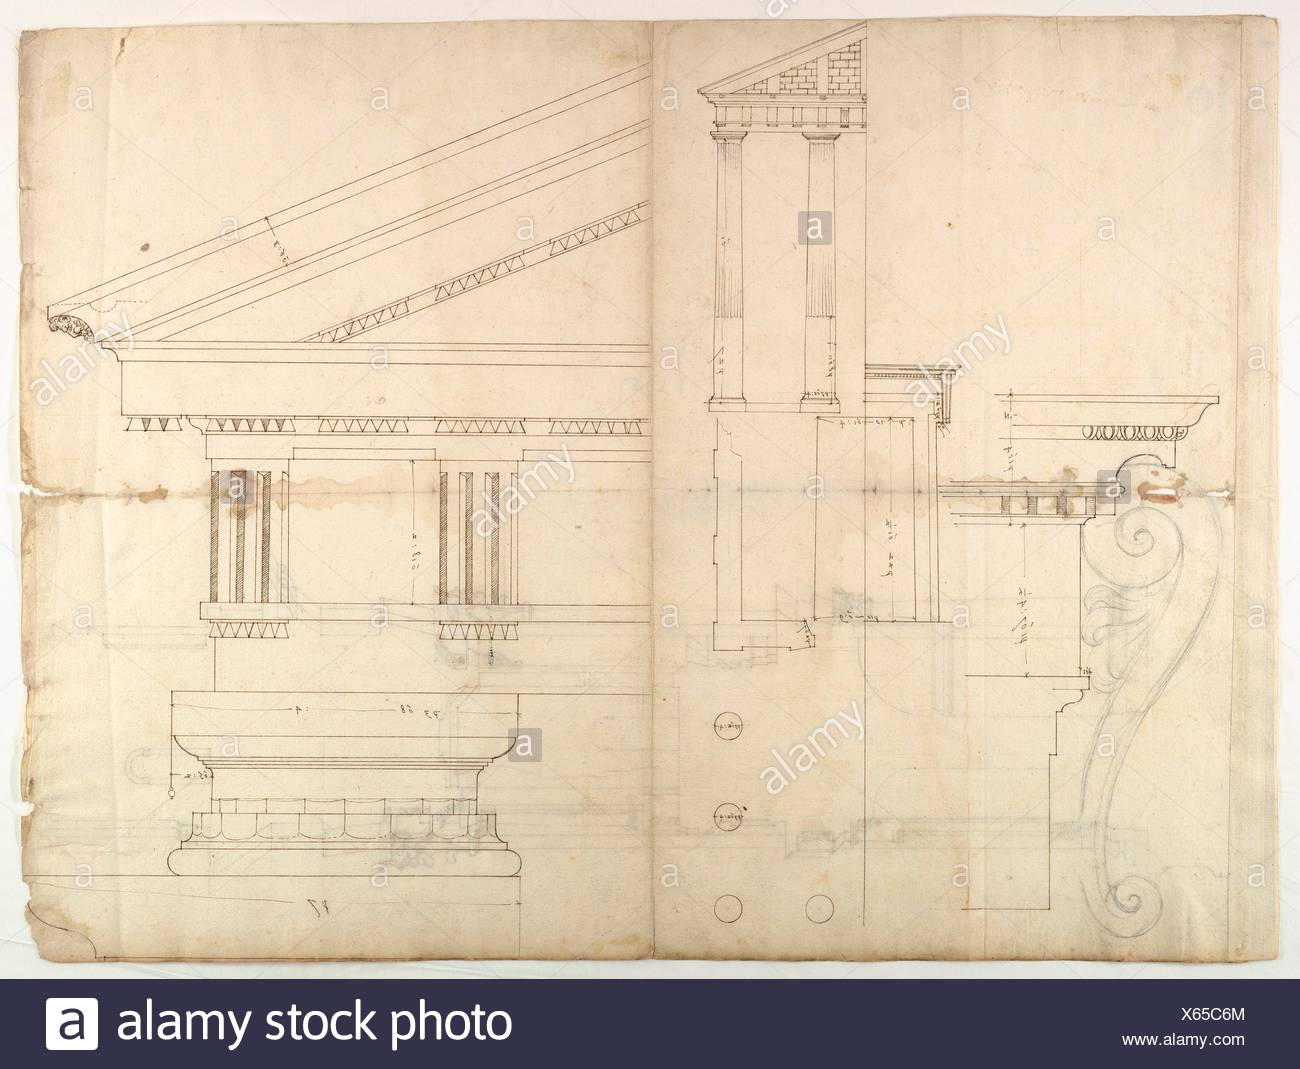 Temple of Hercules, Cori, plan, elevation; portal, details; Doric order, details (recto) St. Peter´s, drum, section (verso). Draftsman: Drawn by Stock Photo